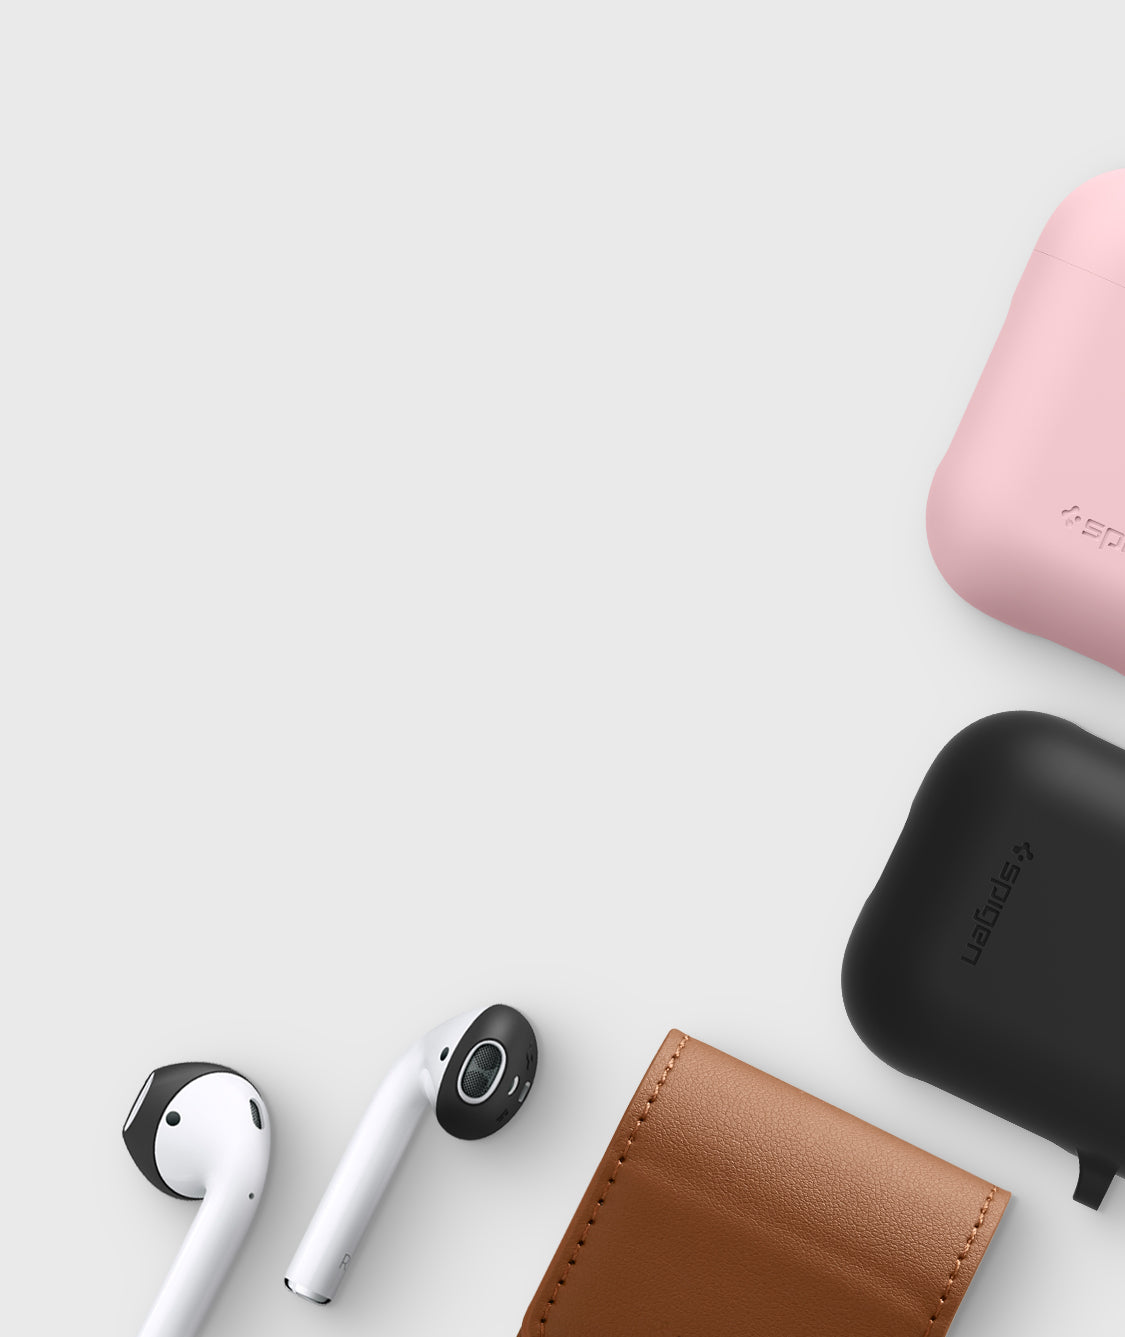 Apple AirPods Case and Accessories